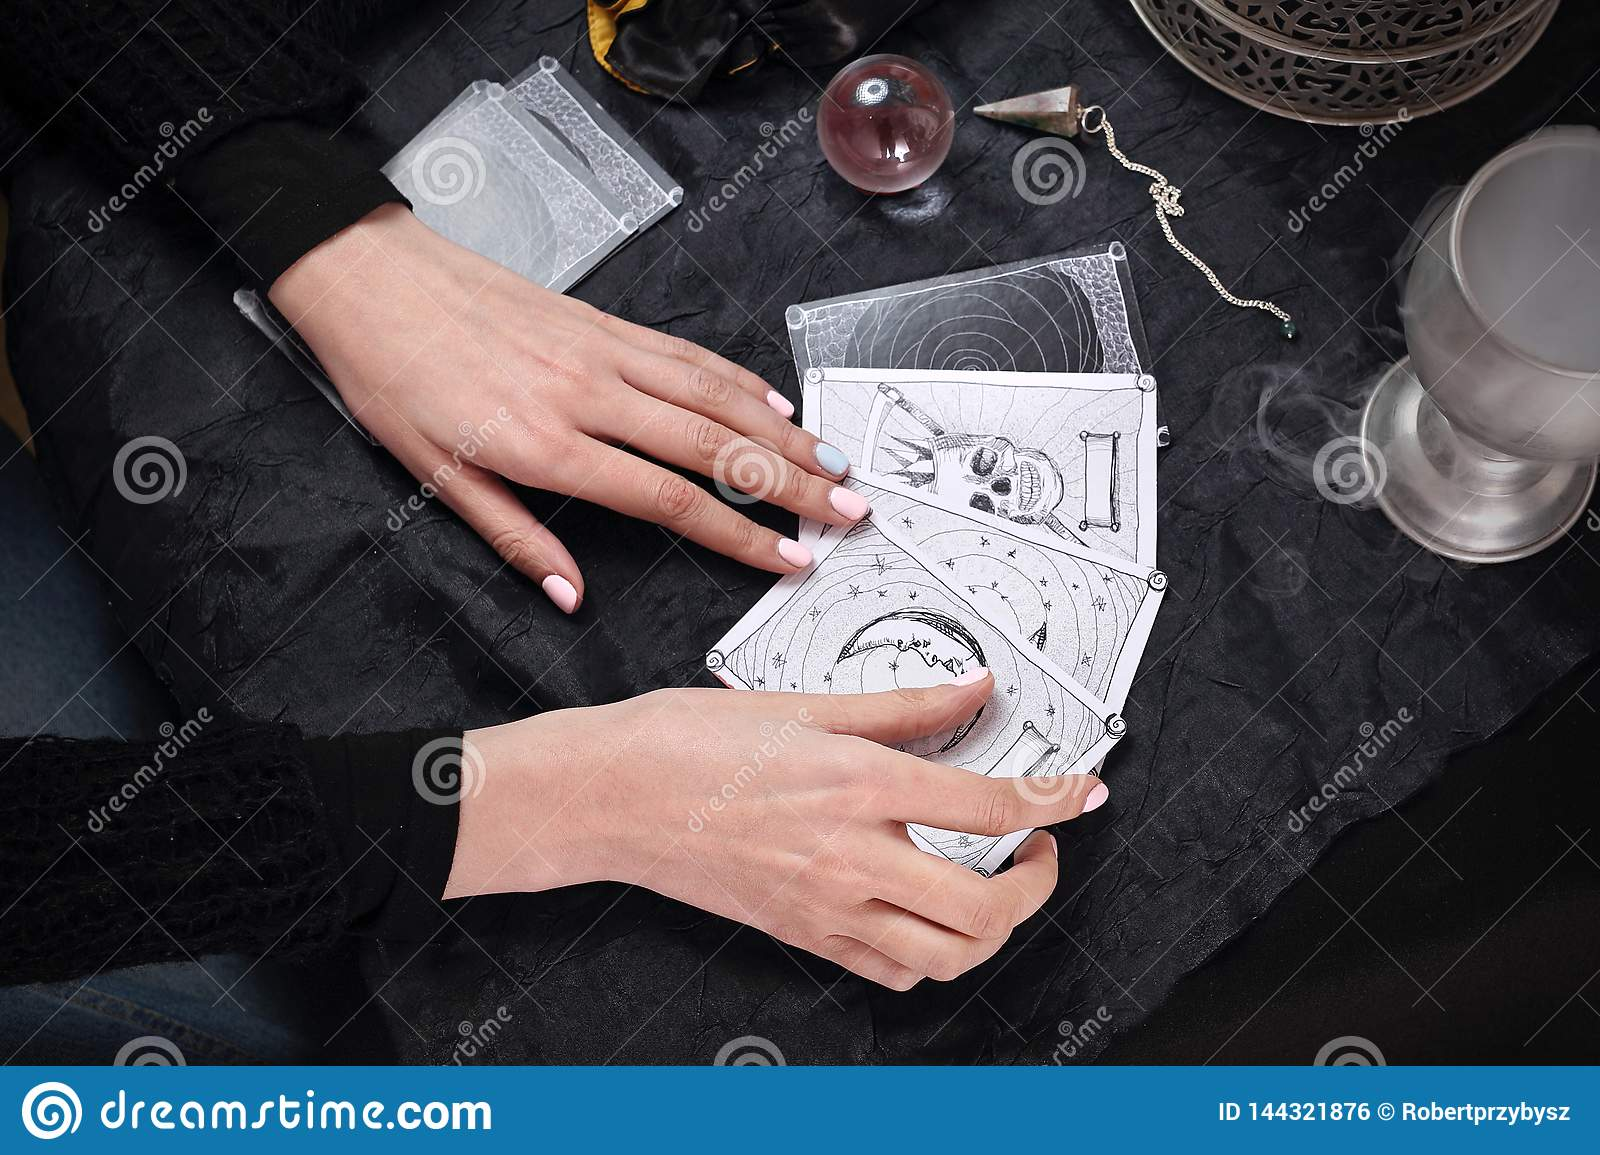 The Fairy Spreads The Tarot Cards, The Magical Meaning Of